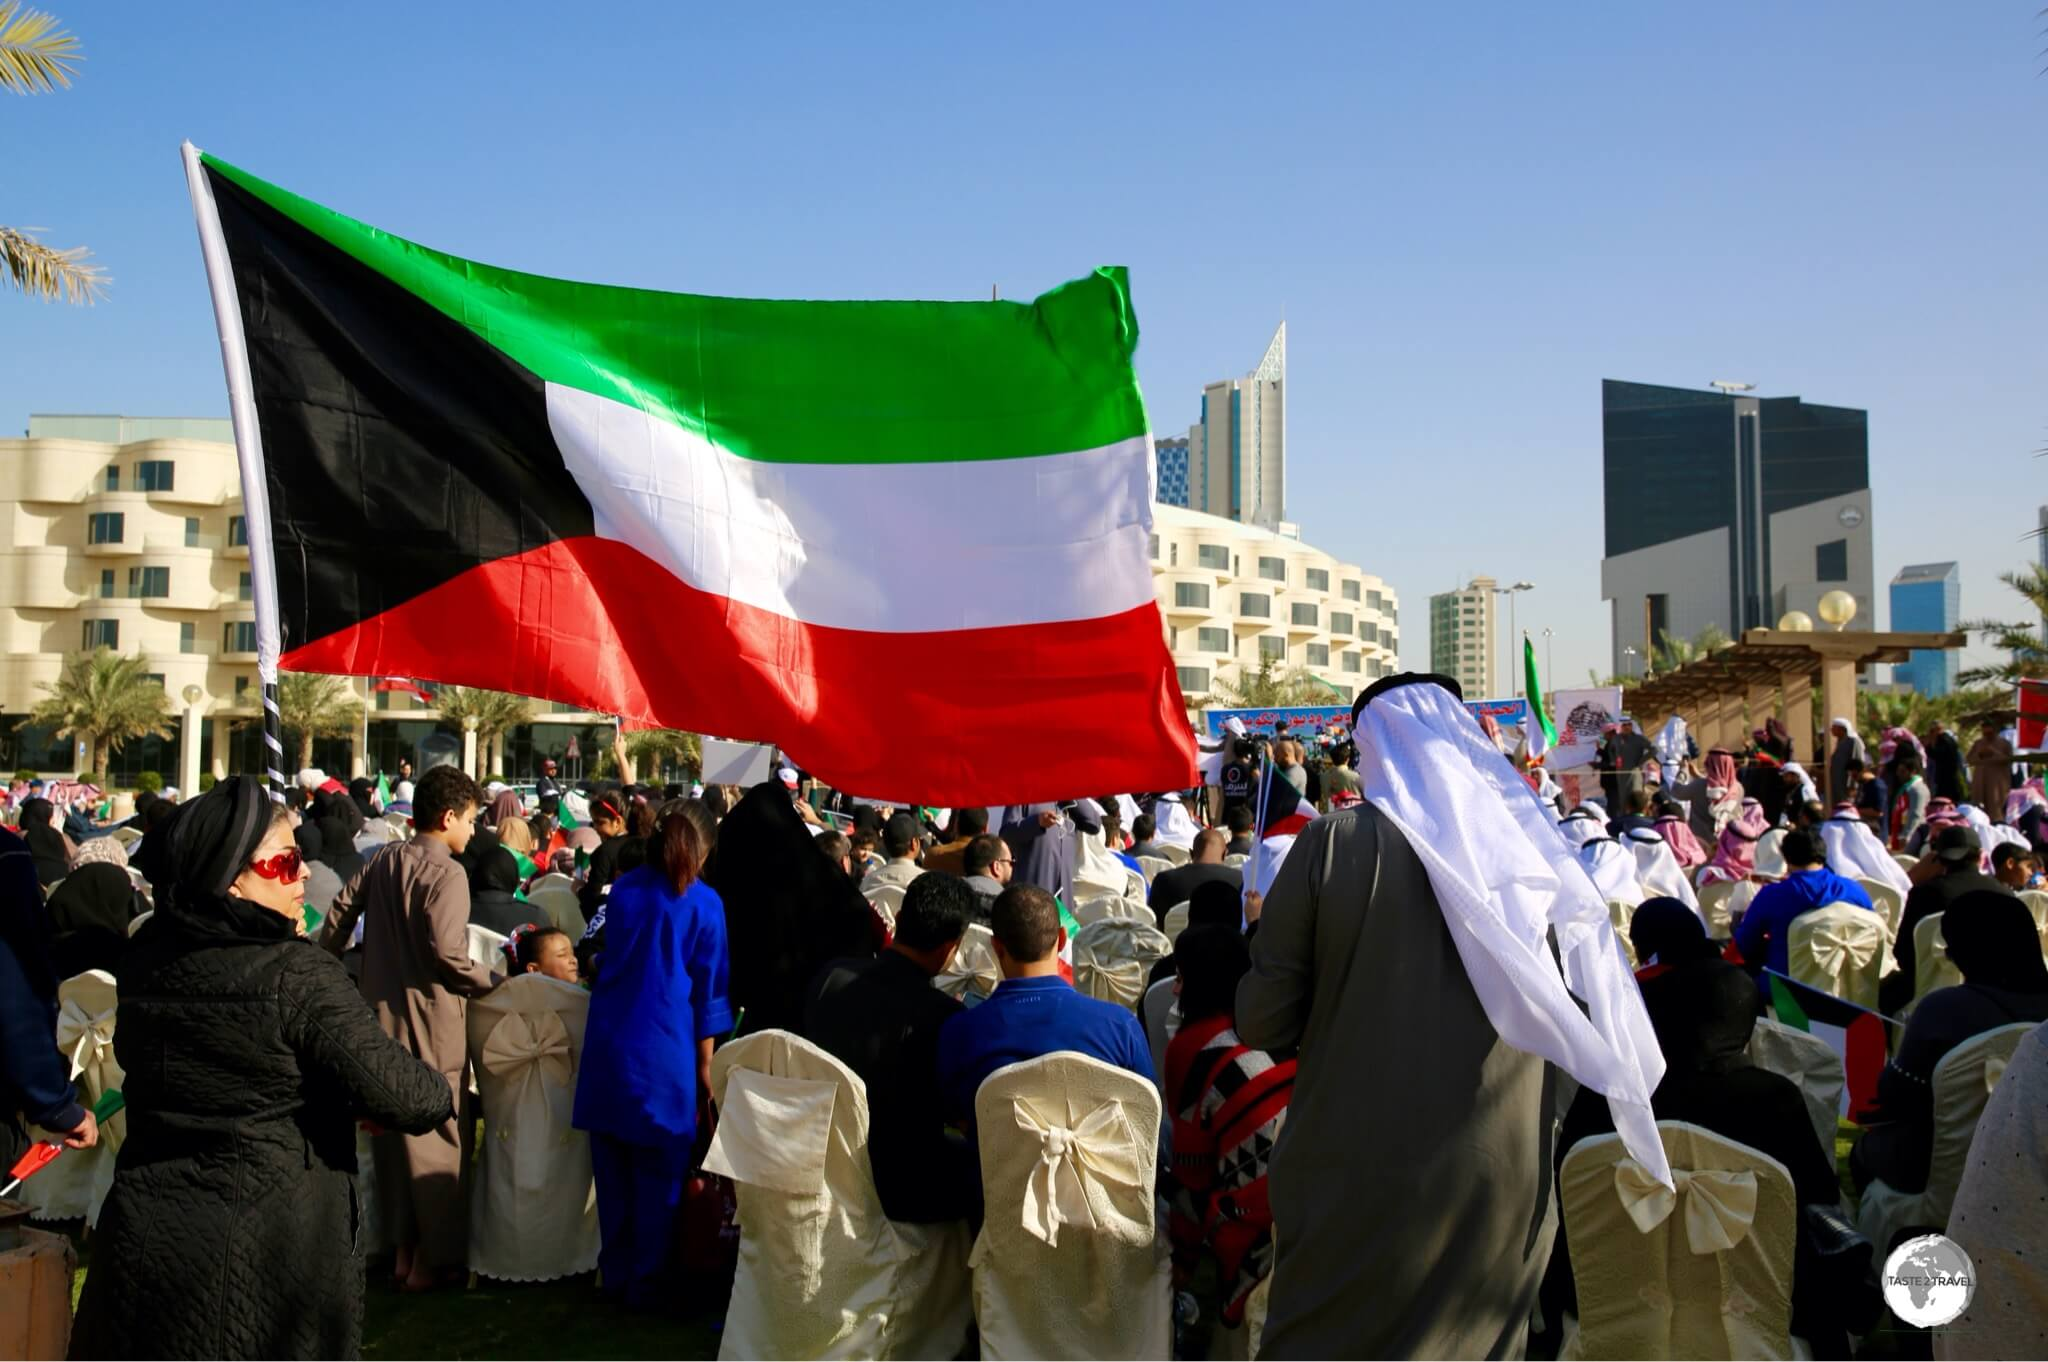 The Kuwaiti flag is flown everywhere throughout the country, including at this political rally in Kuwait city.